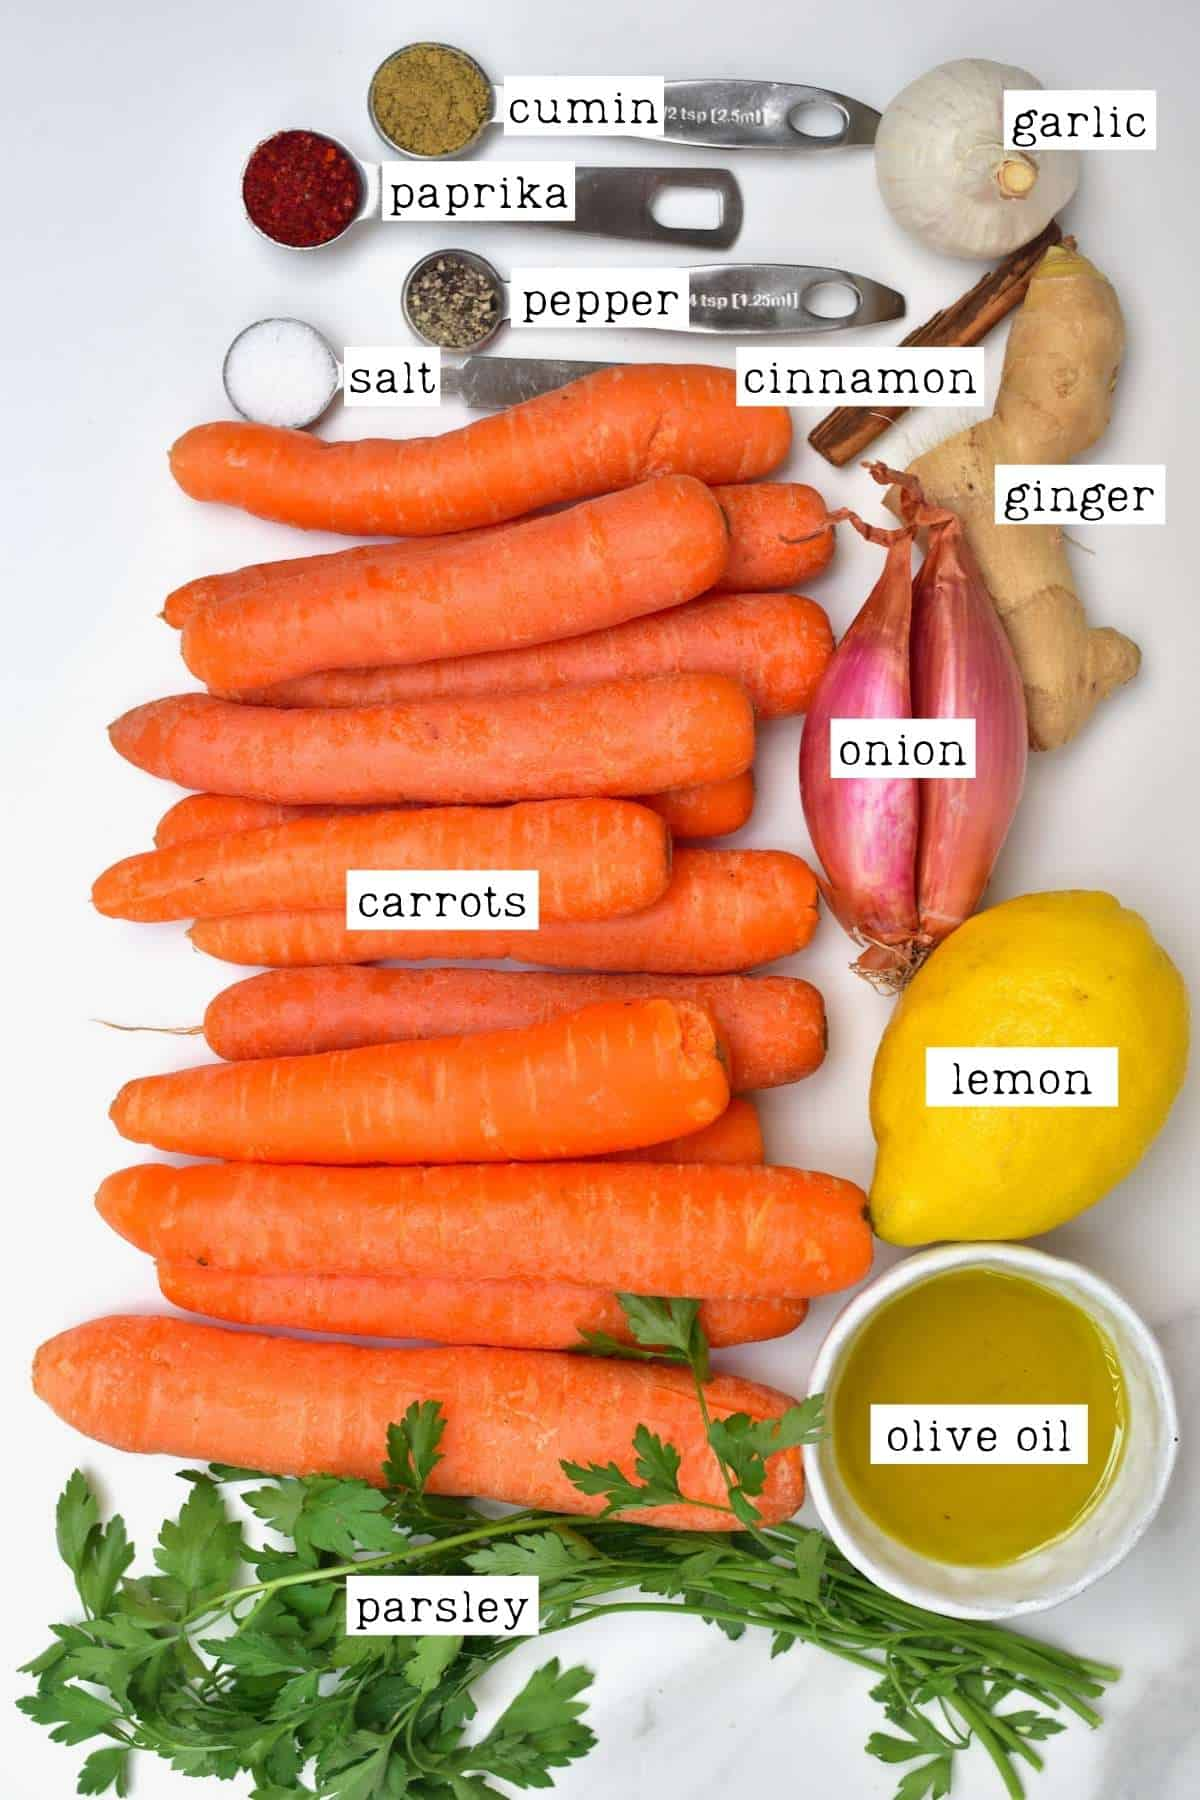 Ingredients for roasted carrot dip